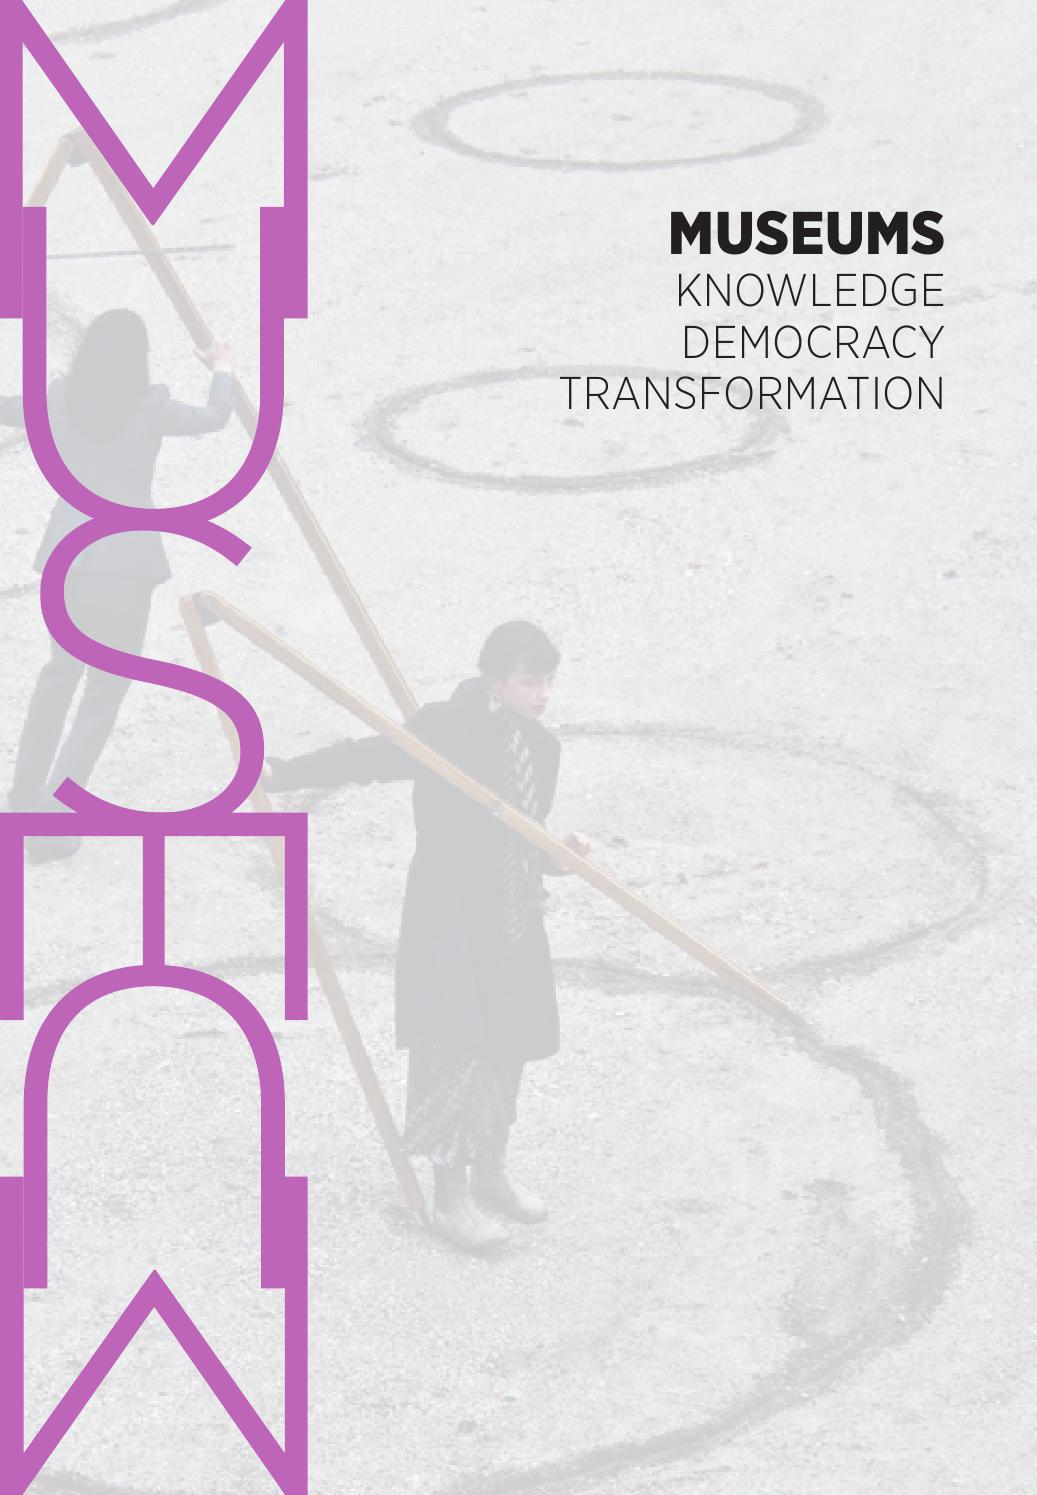 Museums Knowledge Democracy Transformation By Jacob Thorek